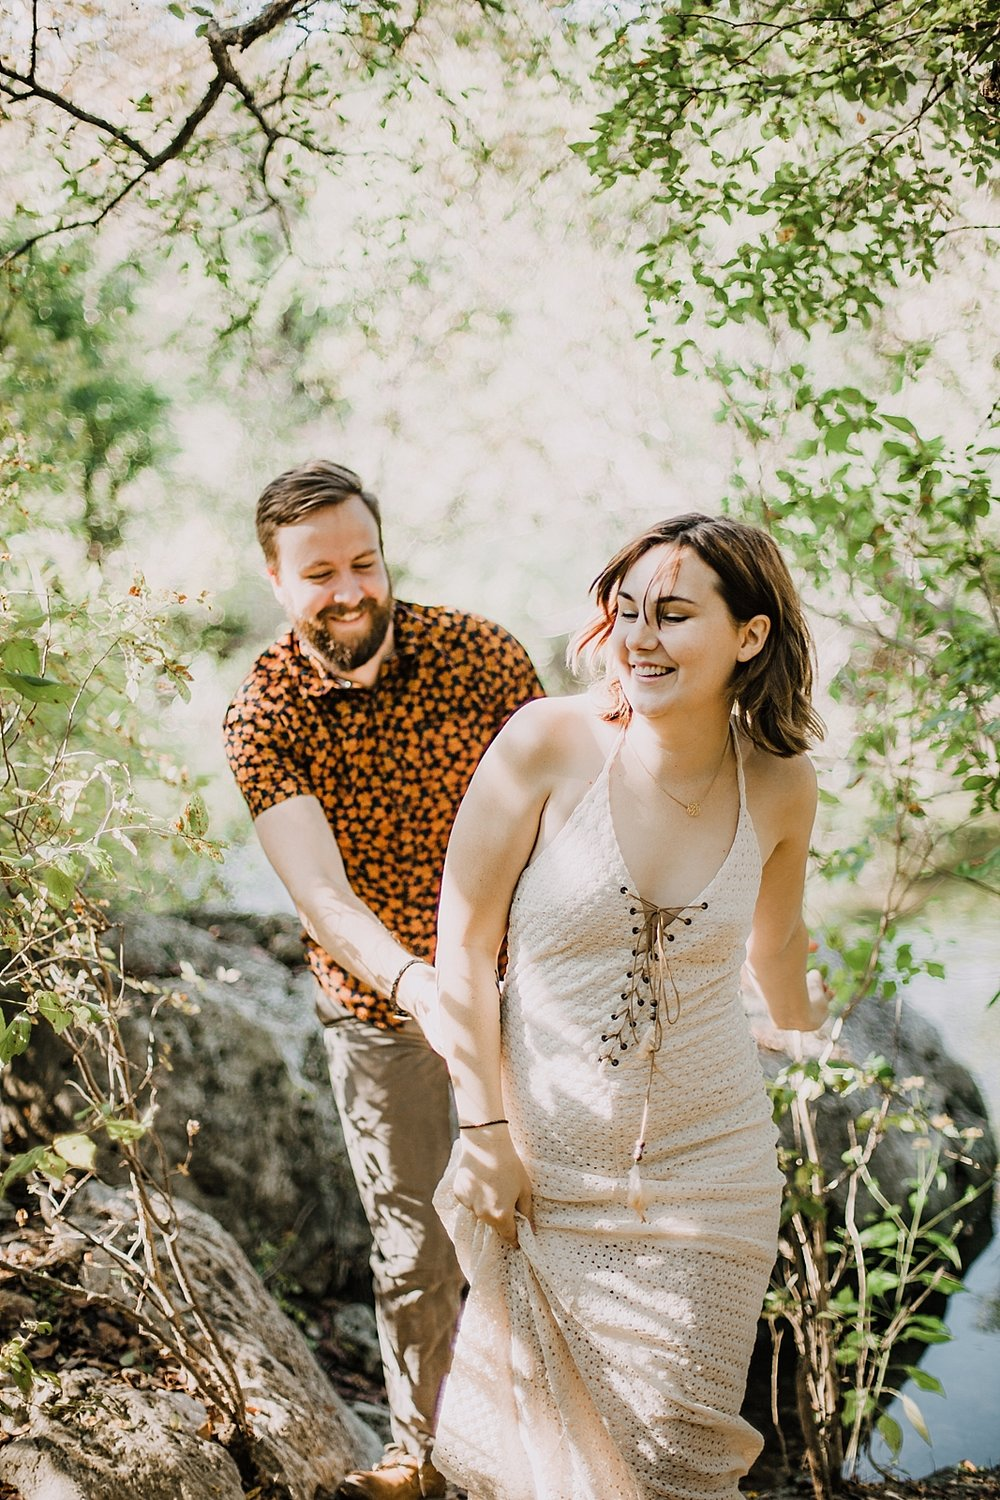 couple hiking together, austin texas wedding photographer, chapel dulcinea wedding photographer, south africa wedding photographer, paris france intimate wedding photographer, hiking photographer